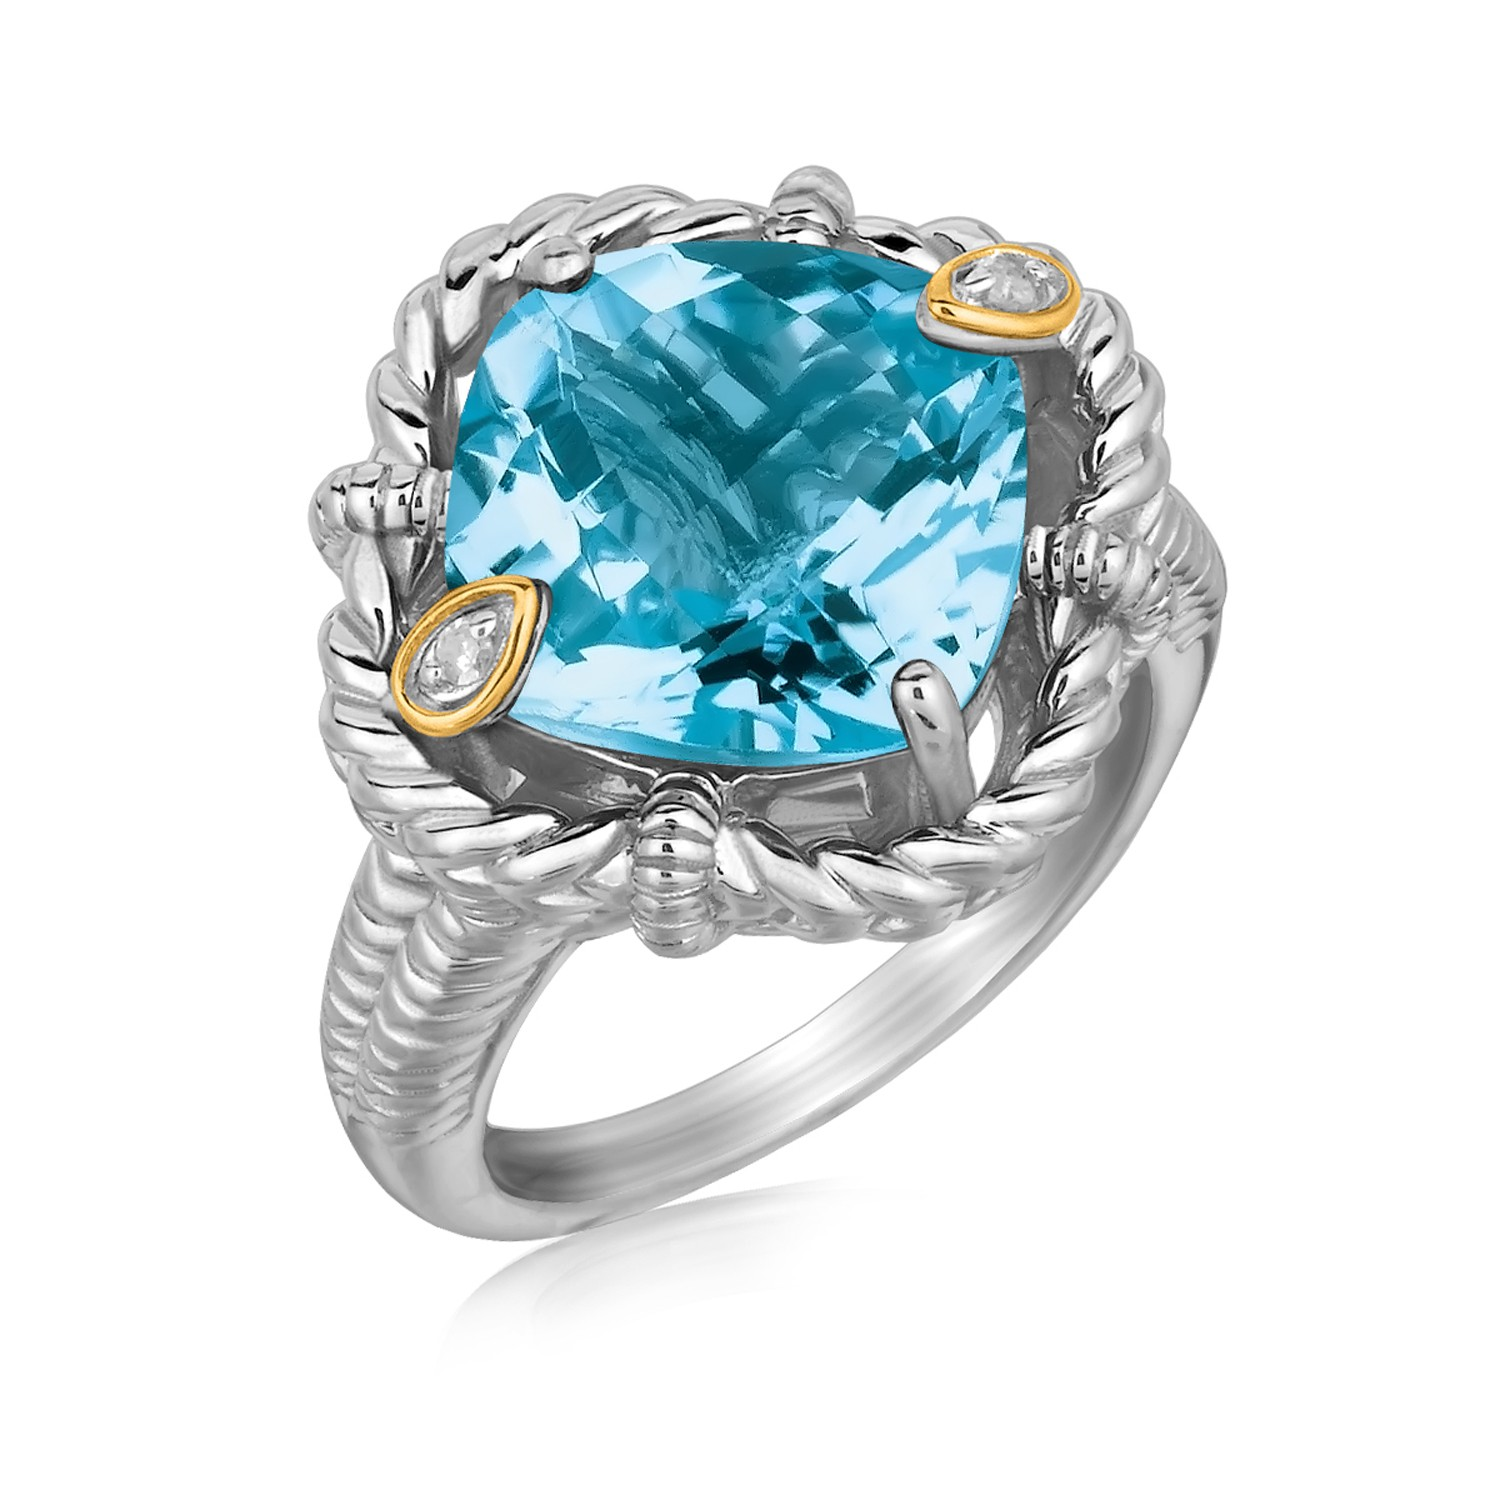 18K Yellow Gold and Sterling Silver Ring with Cushion Blue Topaz and Diamonds Size 8 by Mia Diamonds